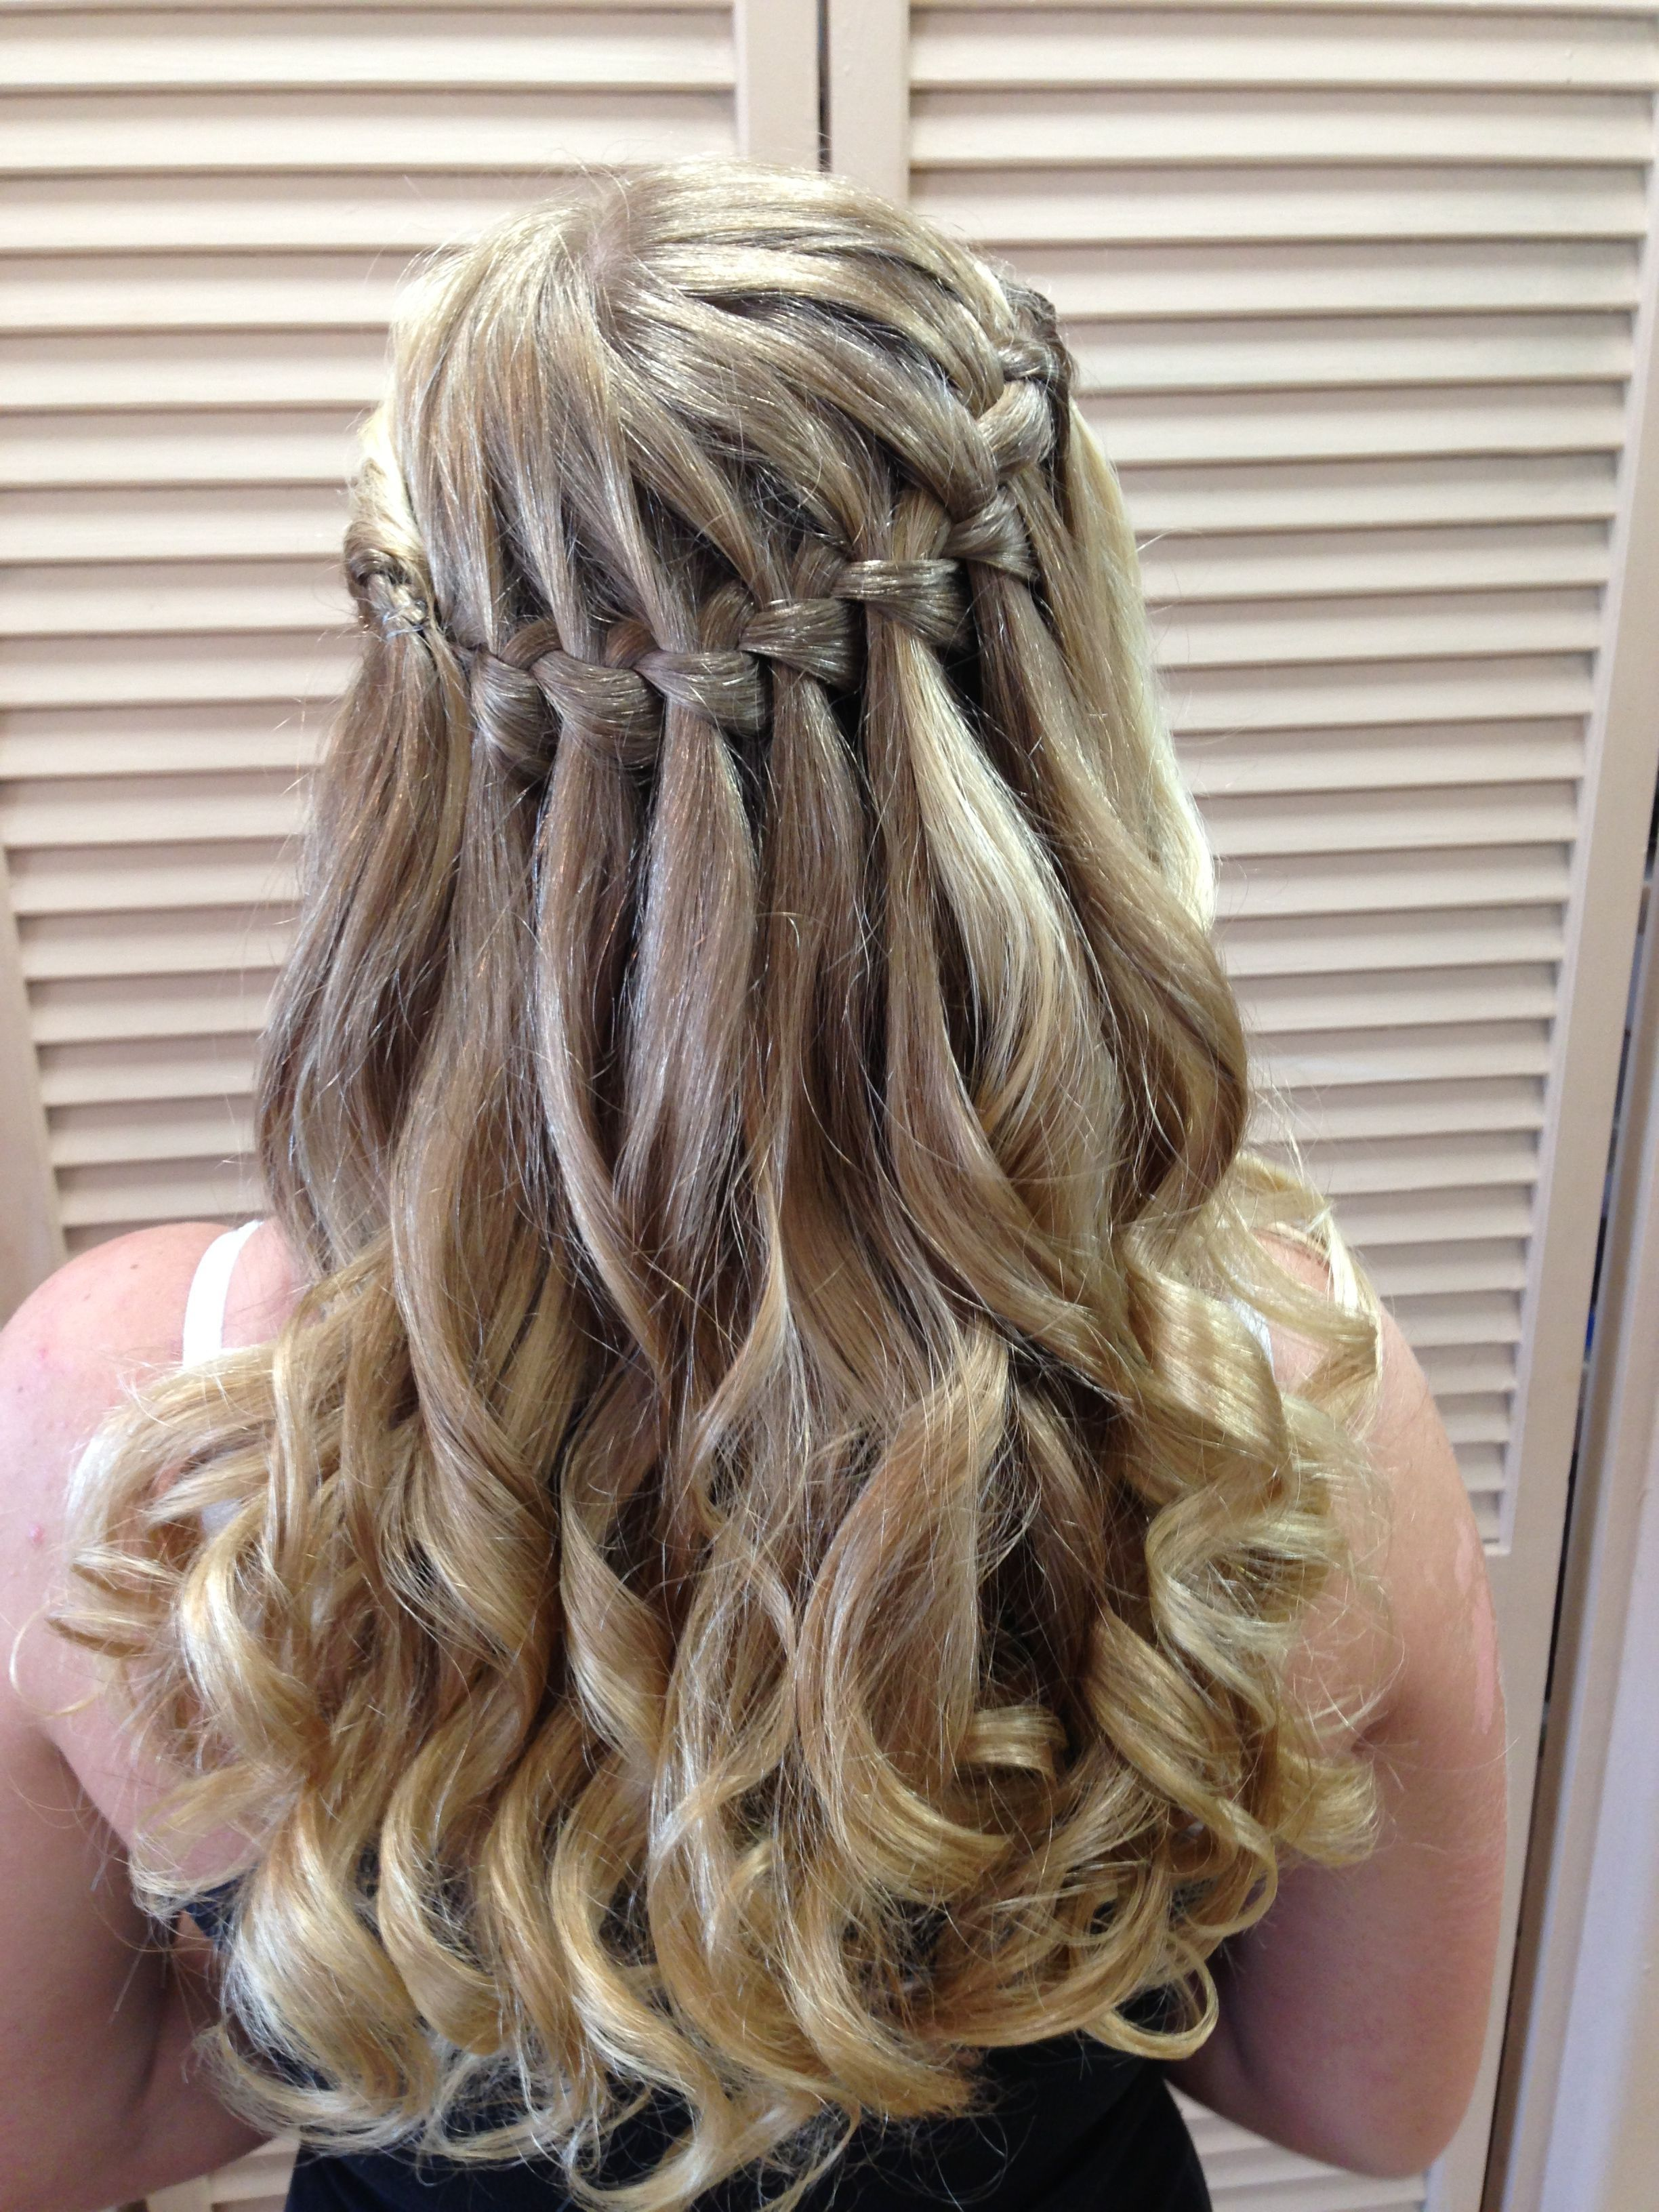 Graduation Hairstyles For Mom To Flaunt This Season in 12